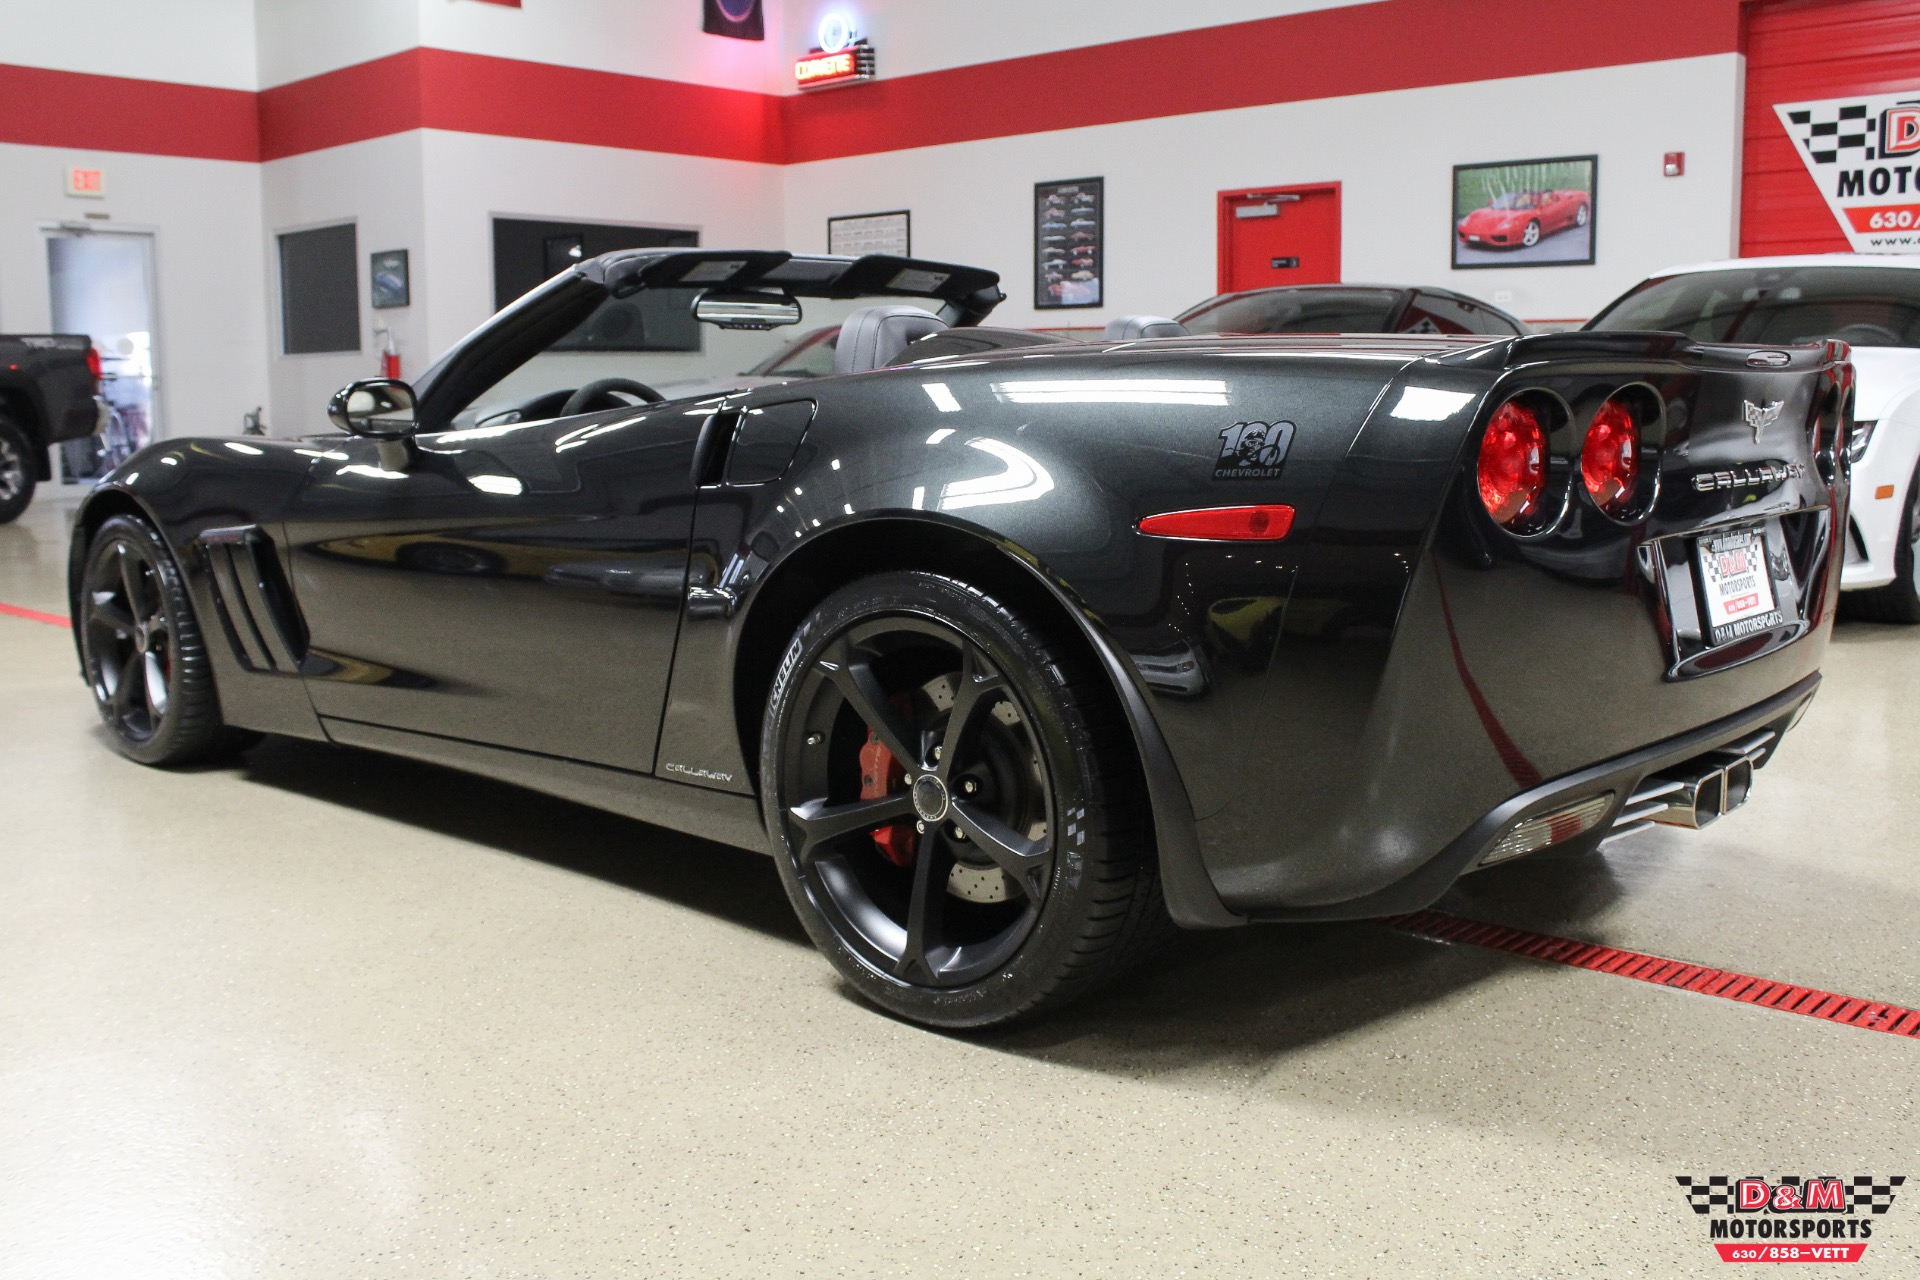 2012 Chevrolet Corvette Grand Sport Convertible Callaway